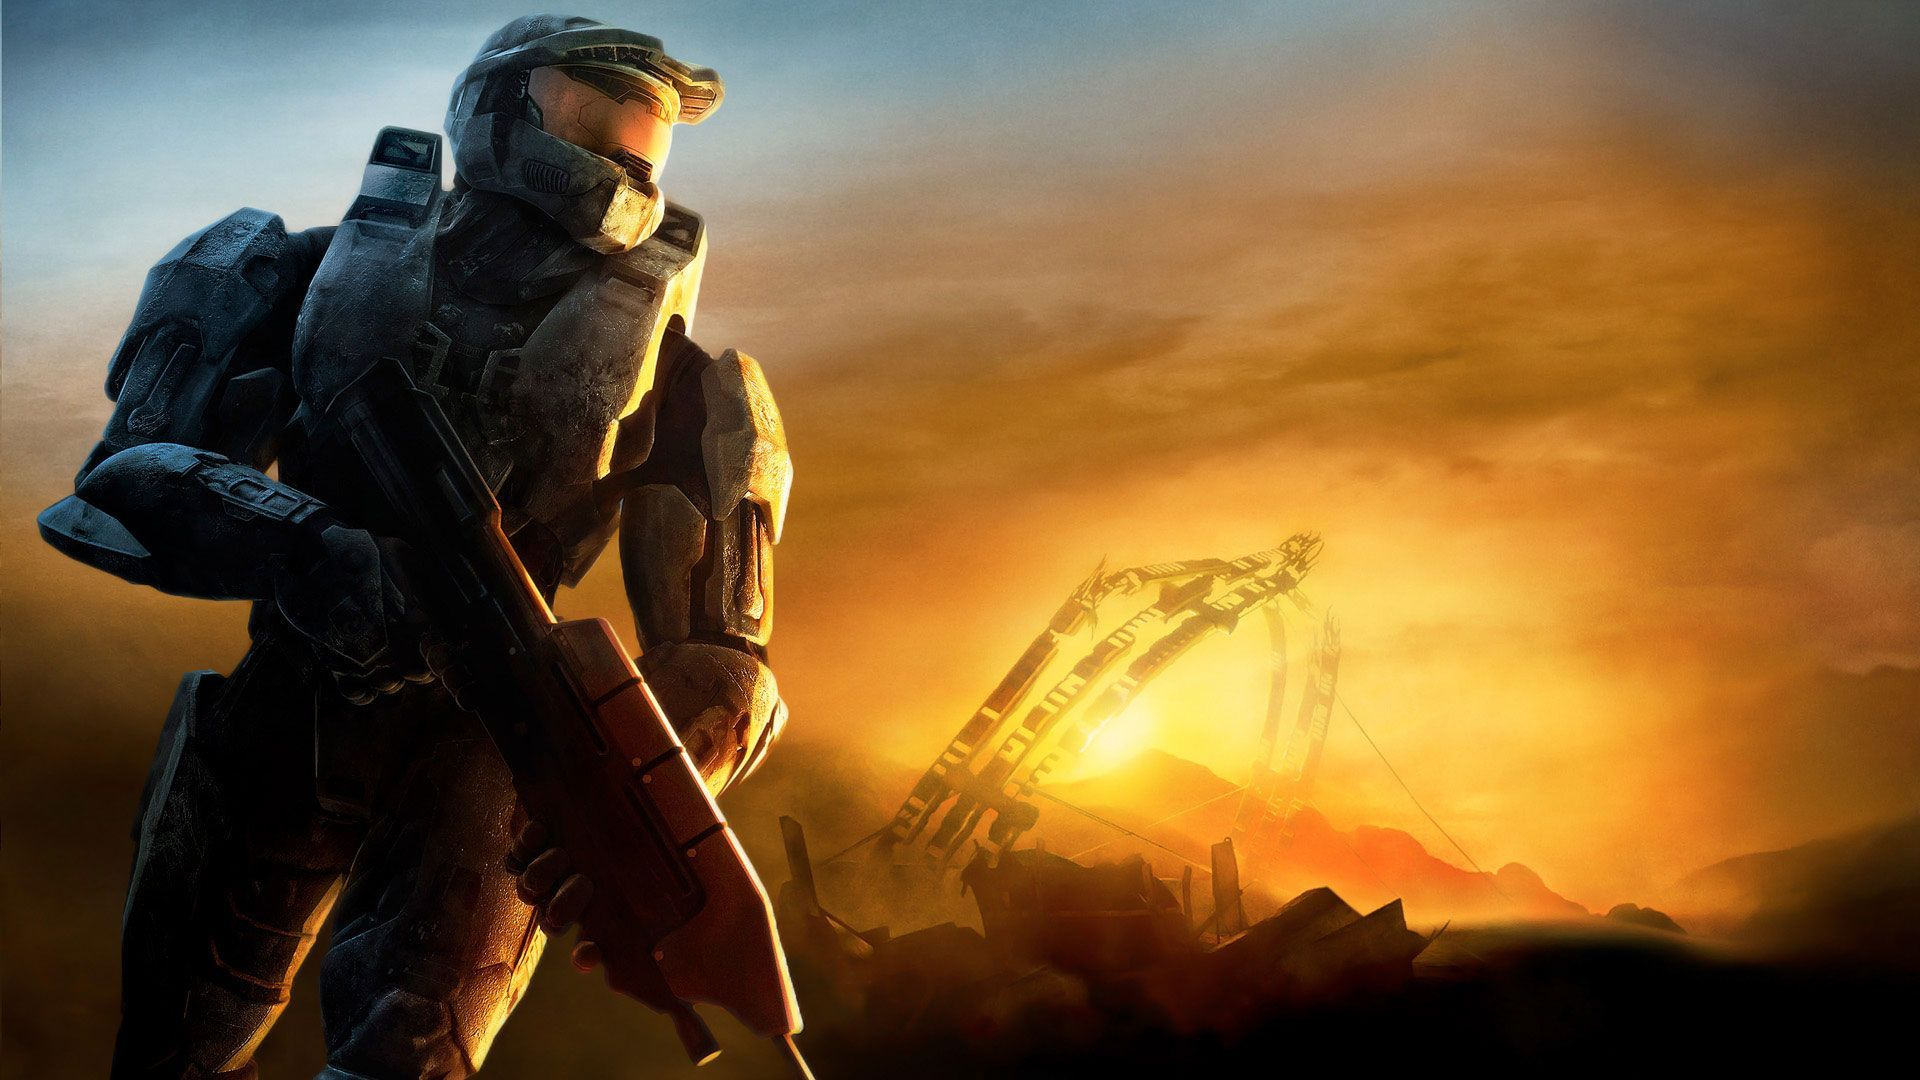 Halo Wallpapers Sf Wallpaper